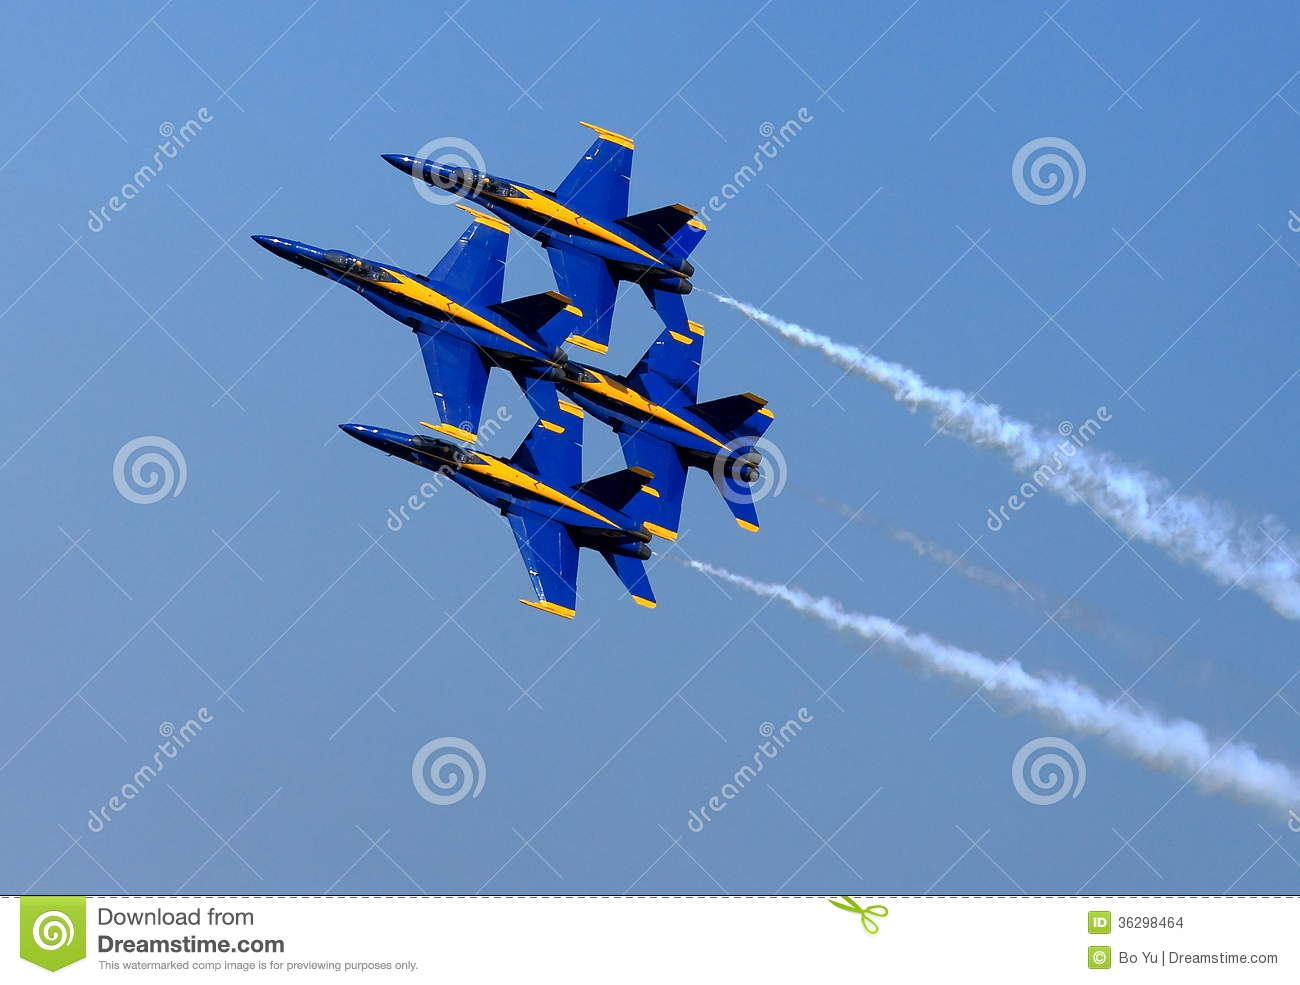 Blue Angel Airshow at Robins AFB